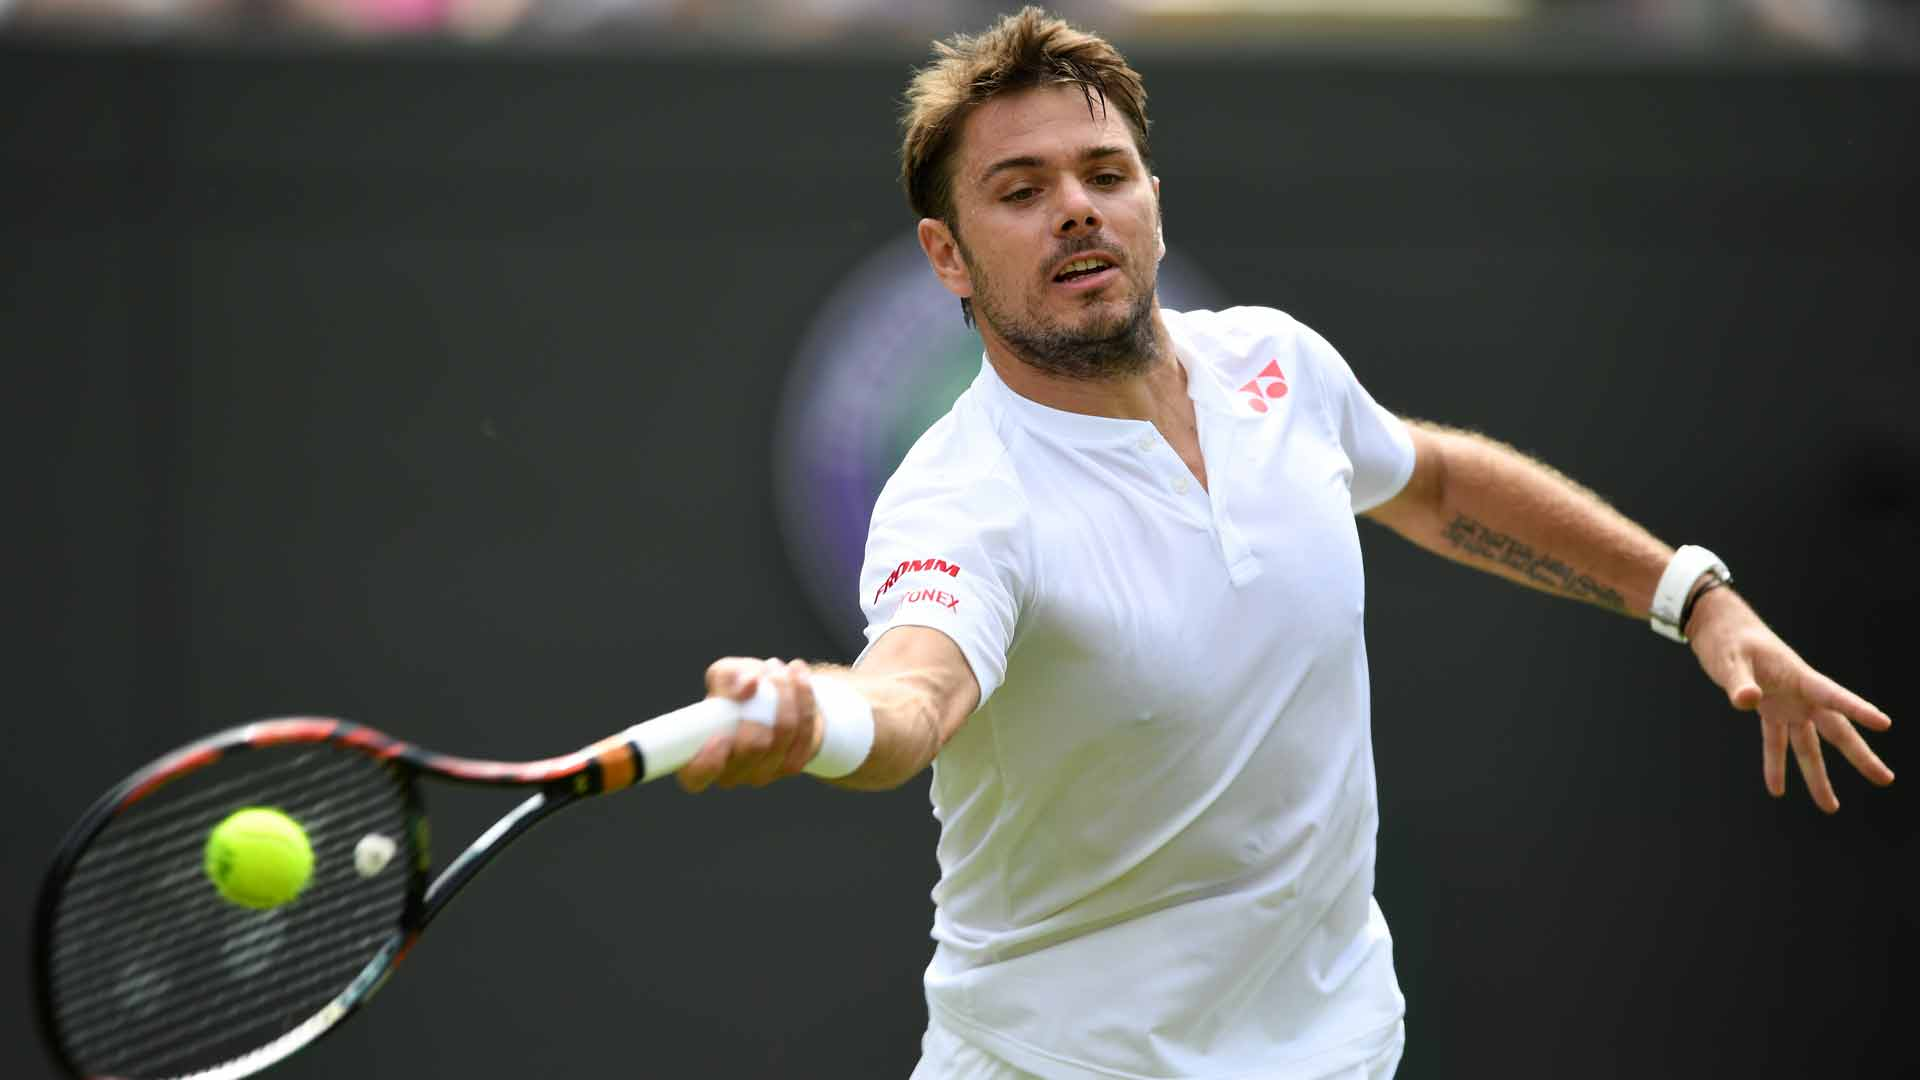 Stan Wawrinka records his 18th career victory at Wimbledon on Tuesday.